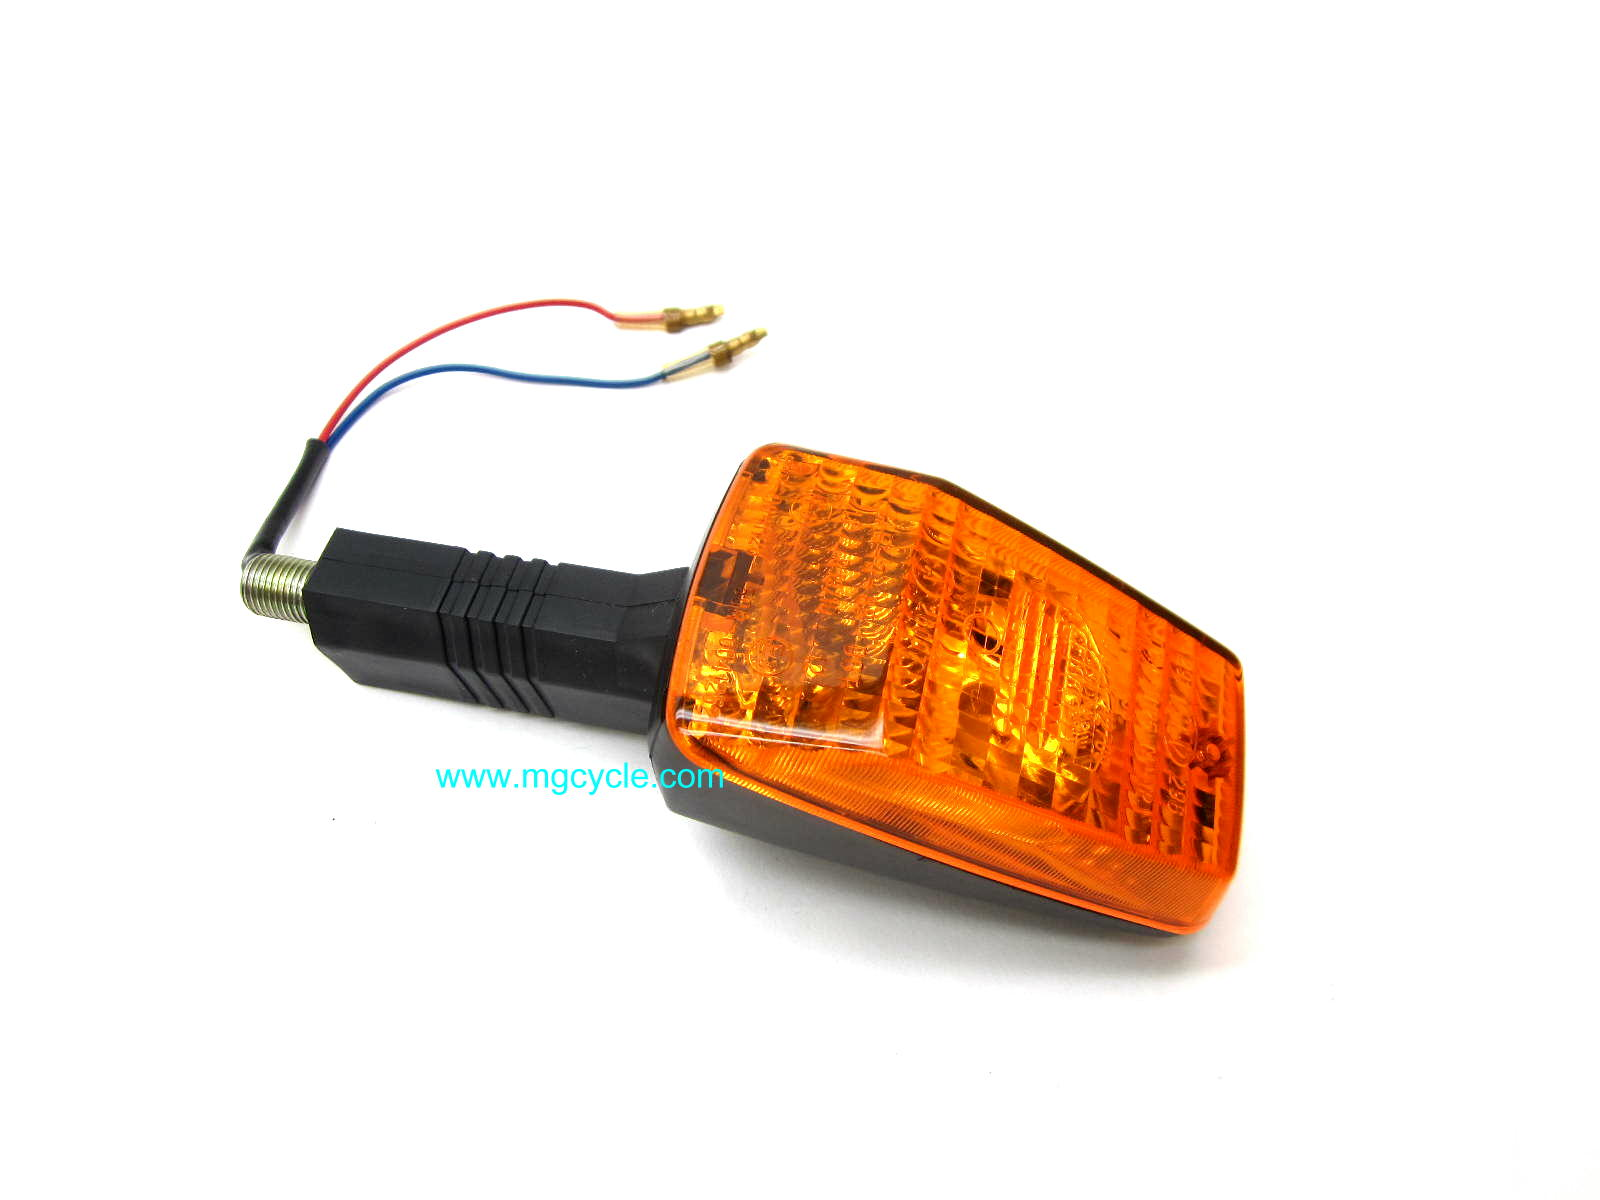 Turn signal, rear, late LeMans 1000, some Mille GT GU28751678